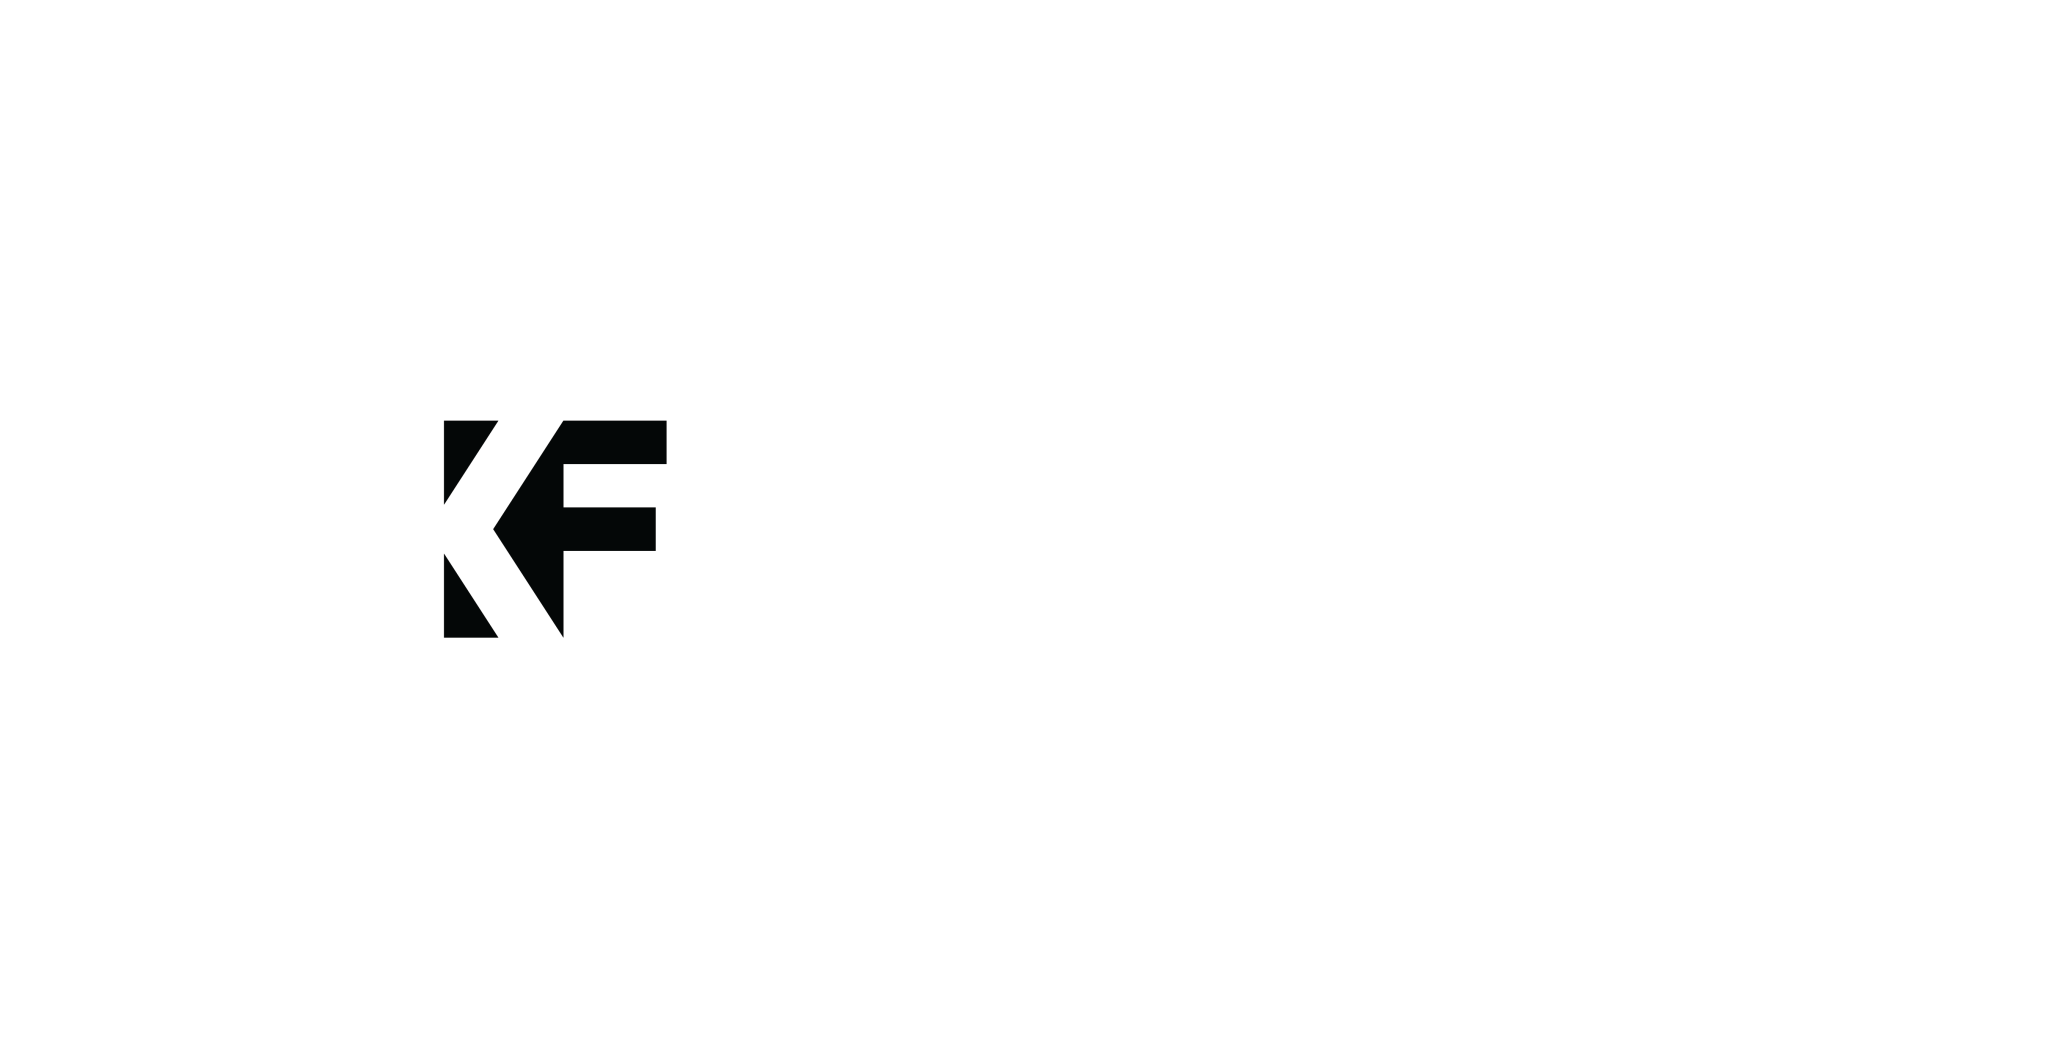 Knight Foundation 2.png